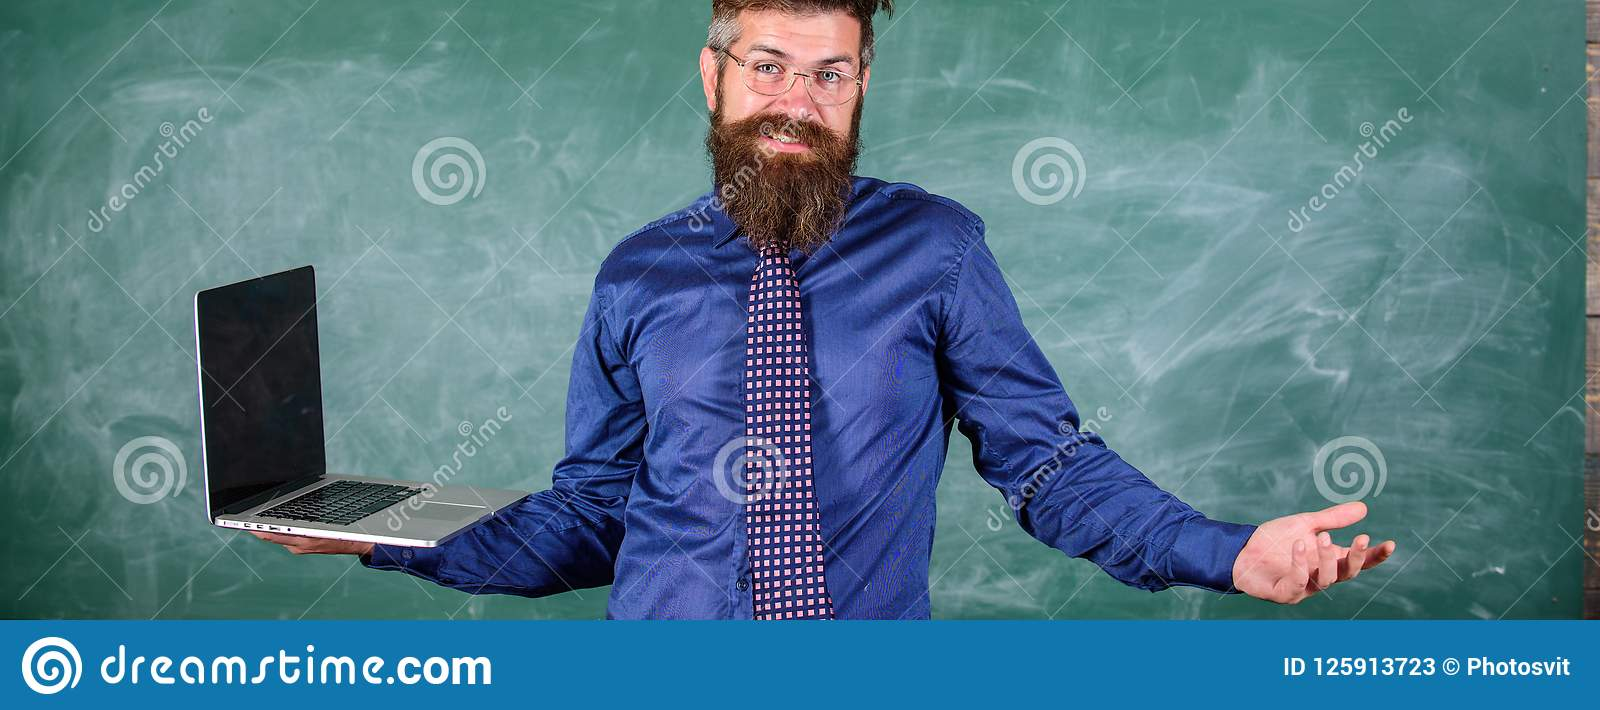 Teaching issues using modern technologies. Hipster teacher confused expression holds laptop. Distance education issues